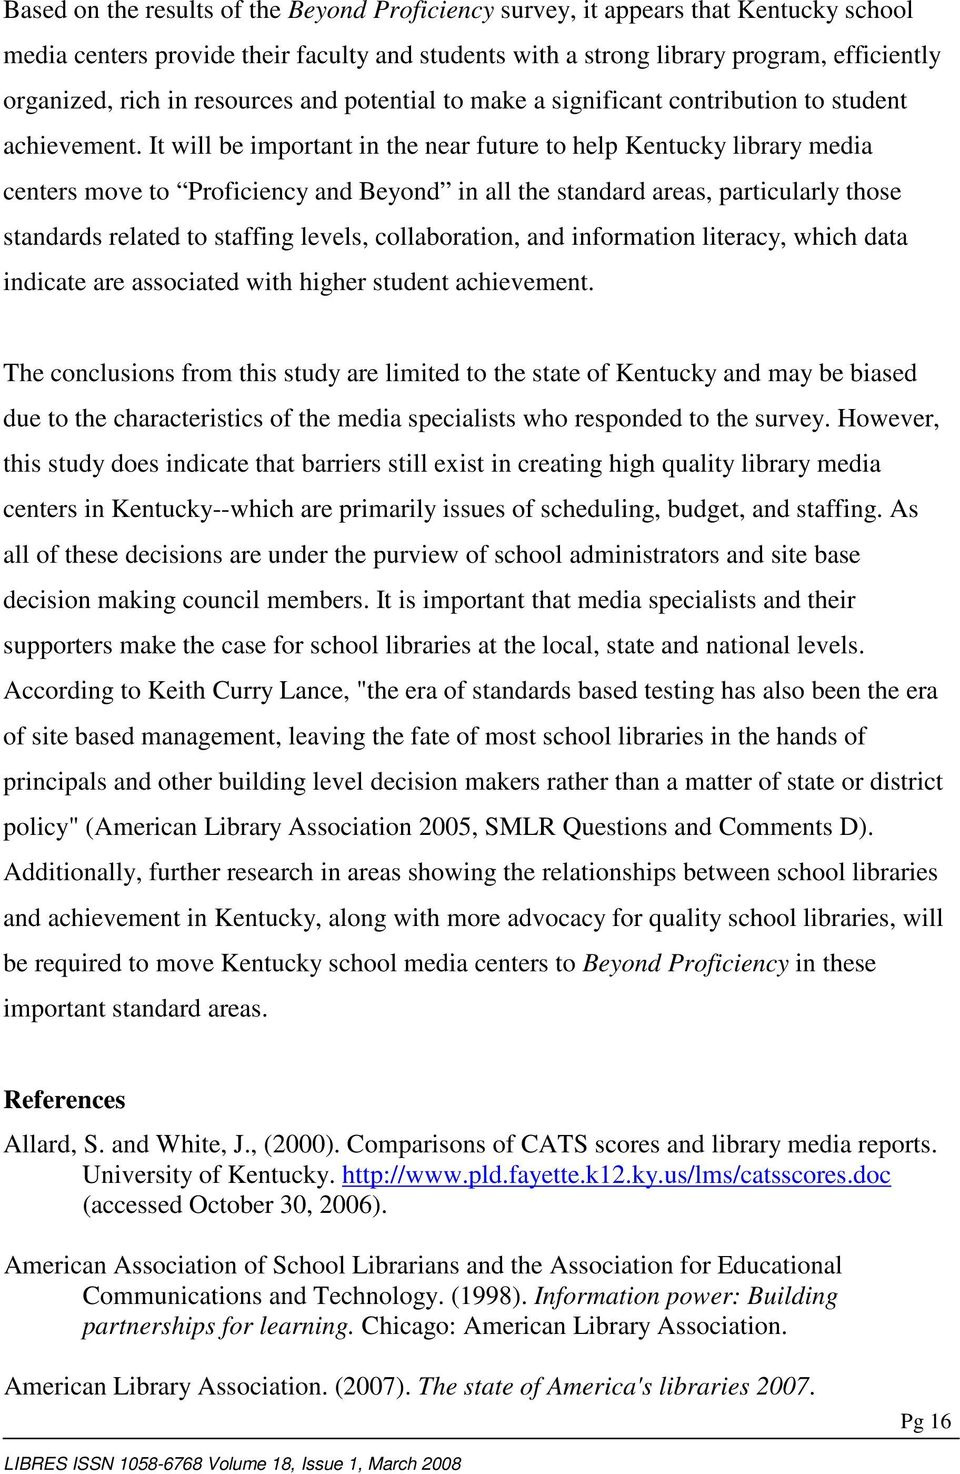 It will be important in the near future to help Kentucky library media centers move to Proficiency and Beyond in all the standard areas, particularly those standards related to staffing levels,